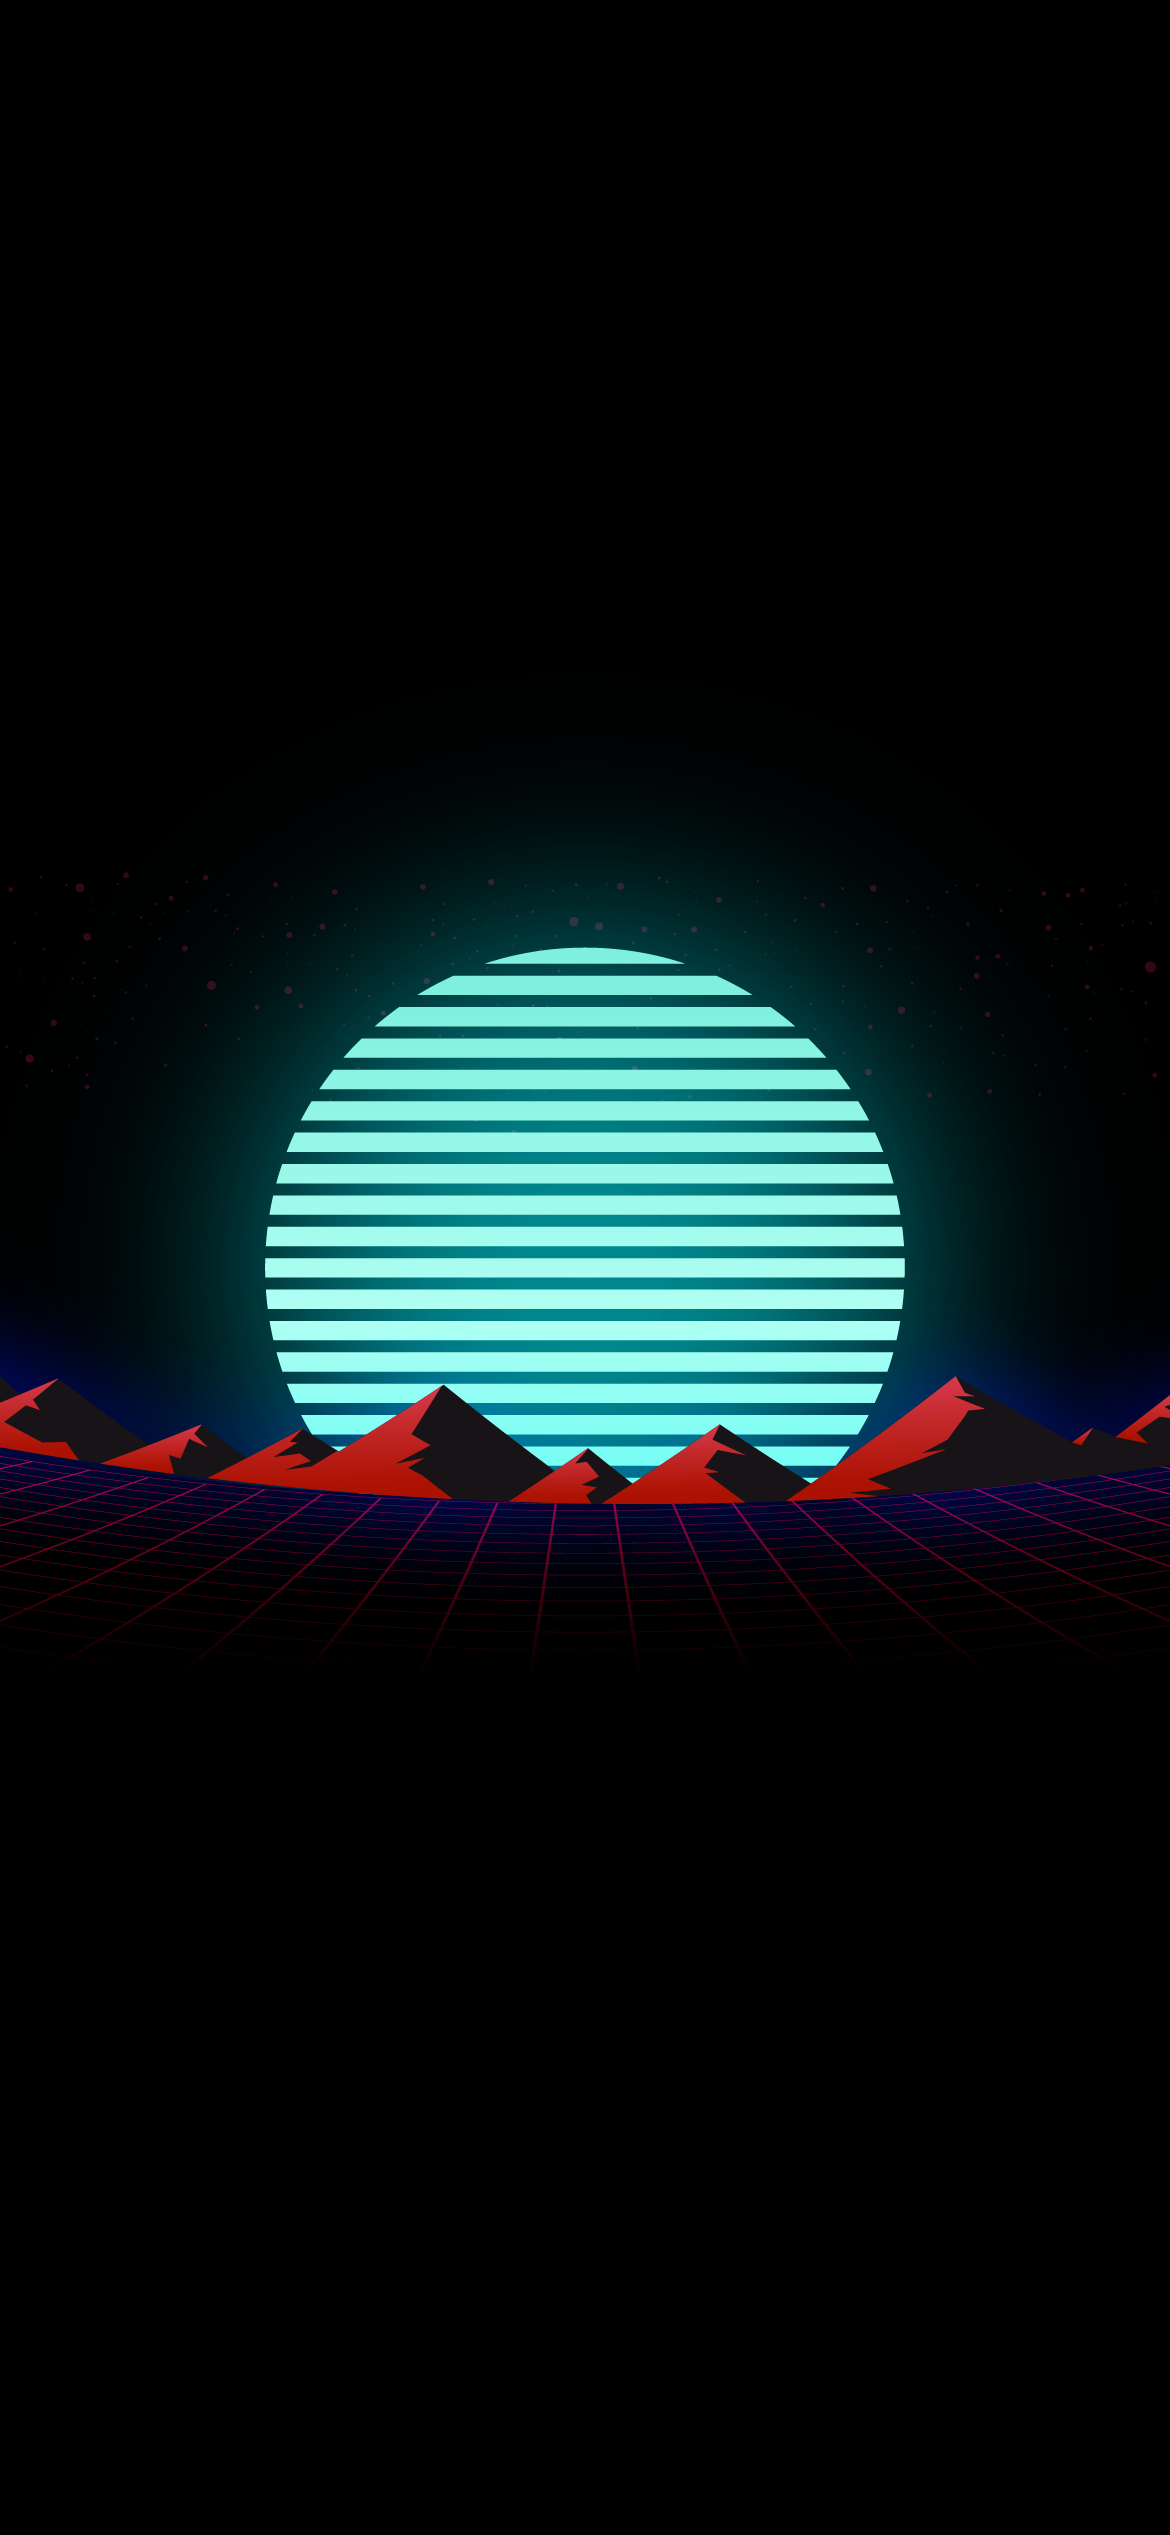 retrowave synthwave synth outrun oled amoled black